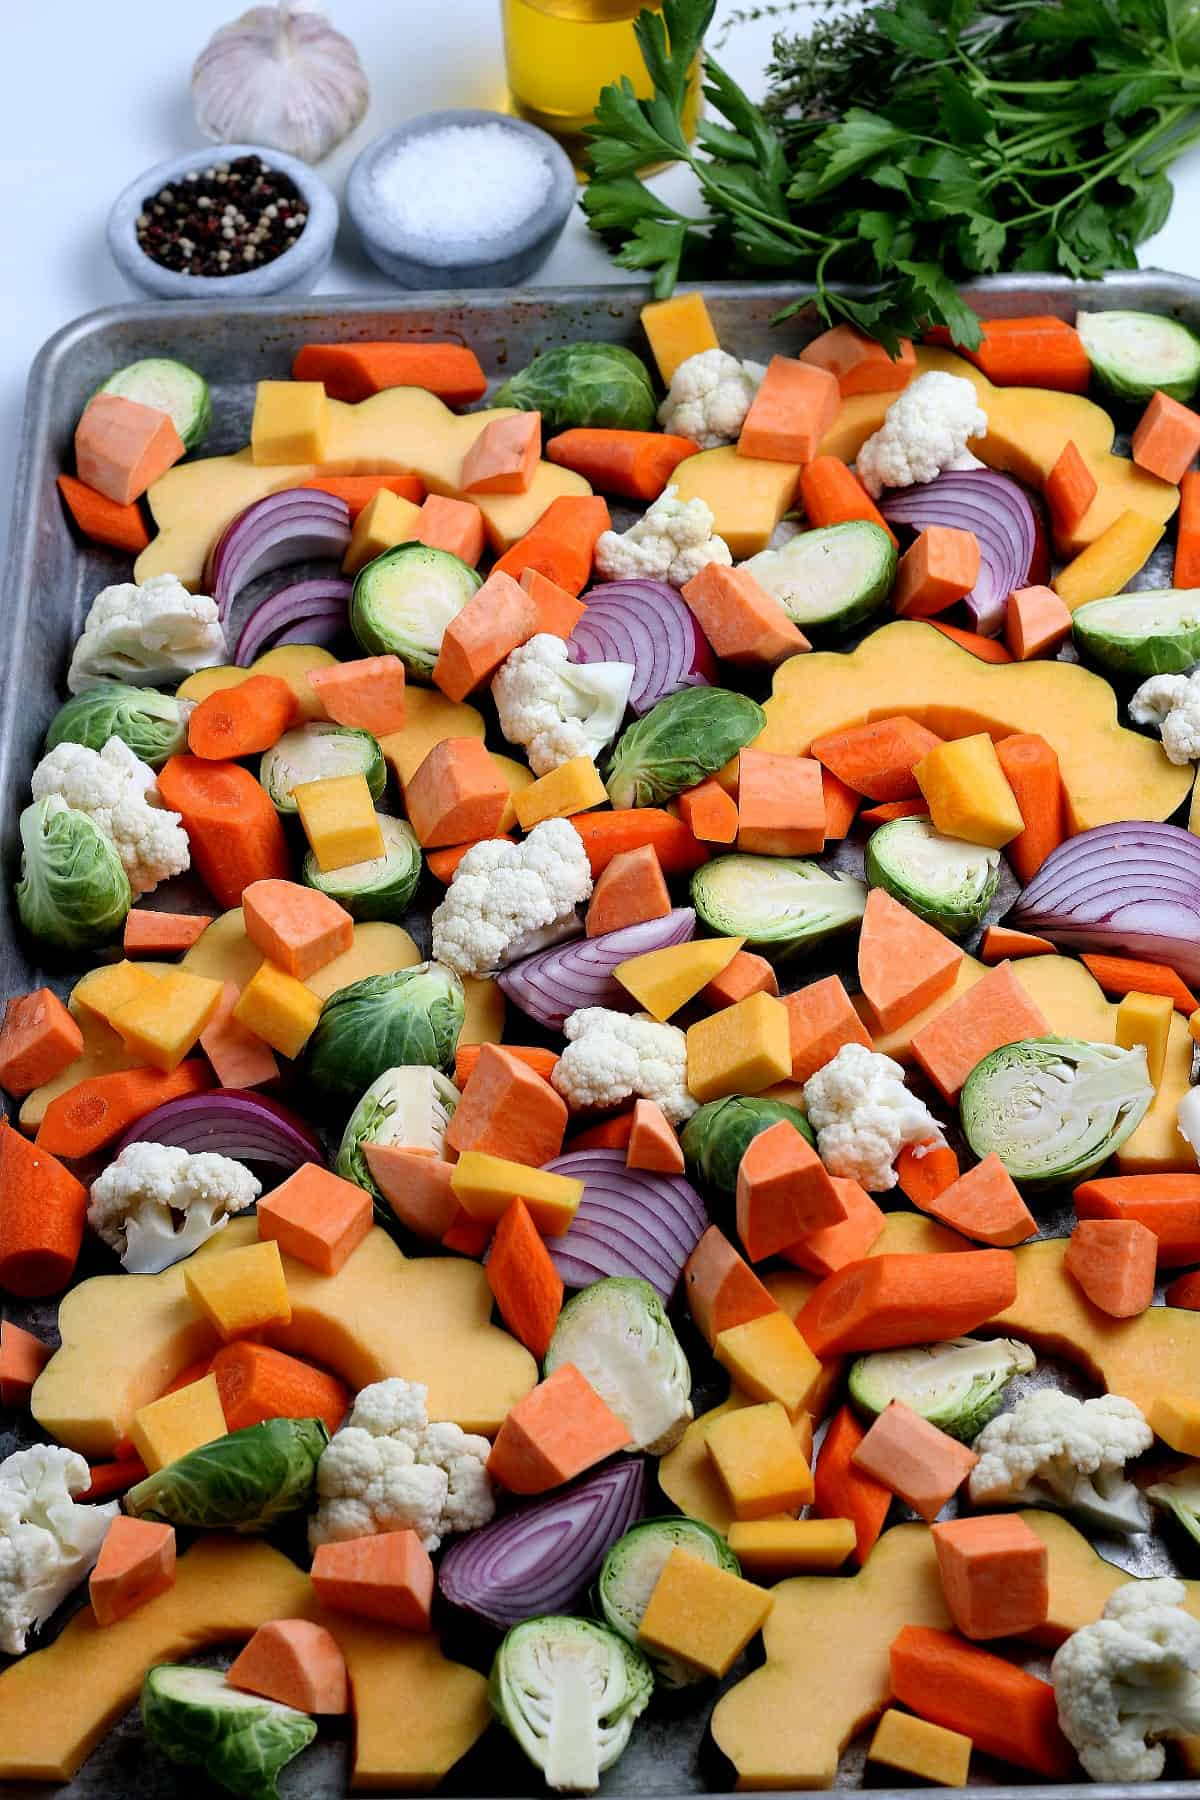 Colorful ingredients spread out on a baking sheet to roast.